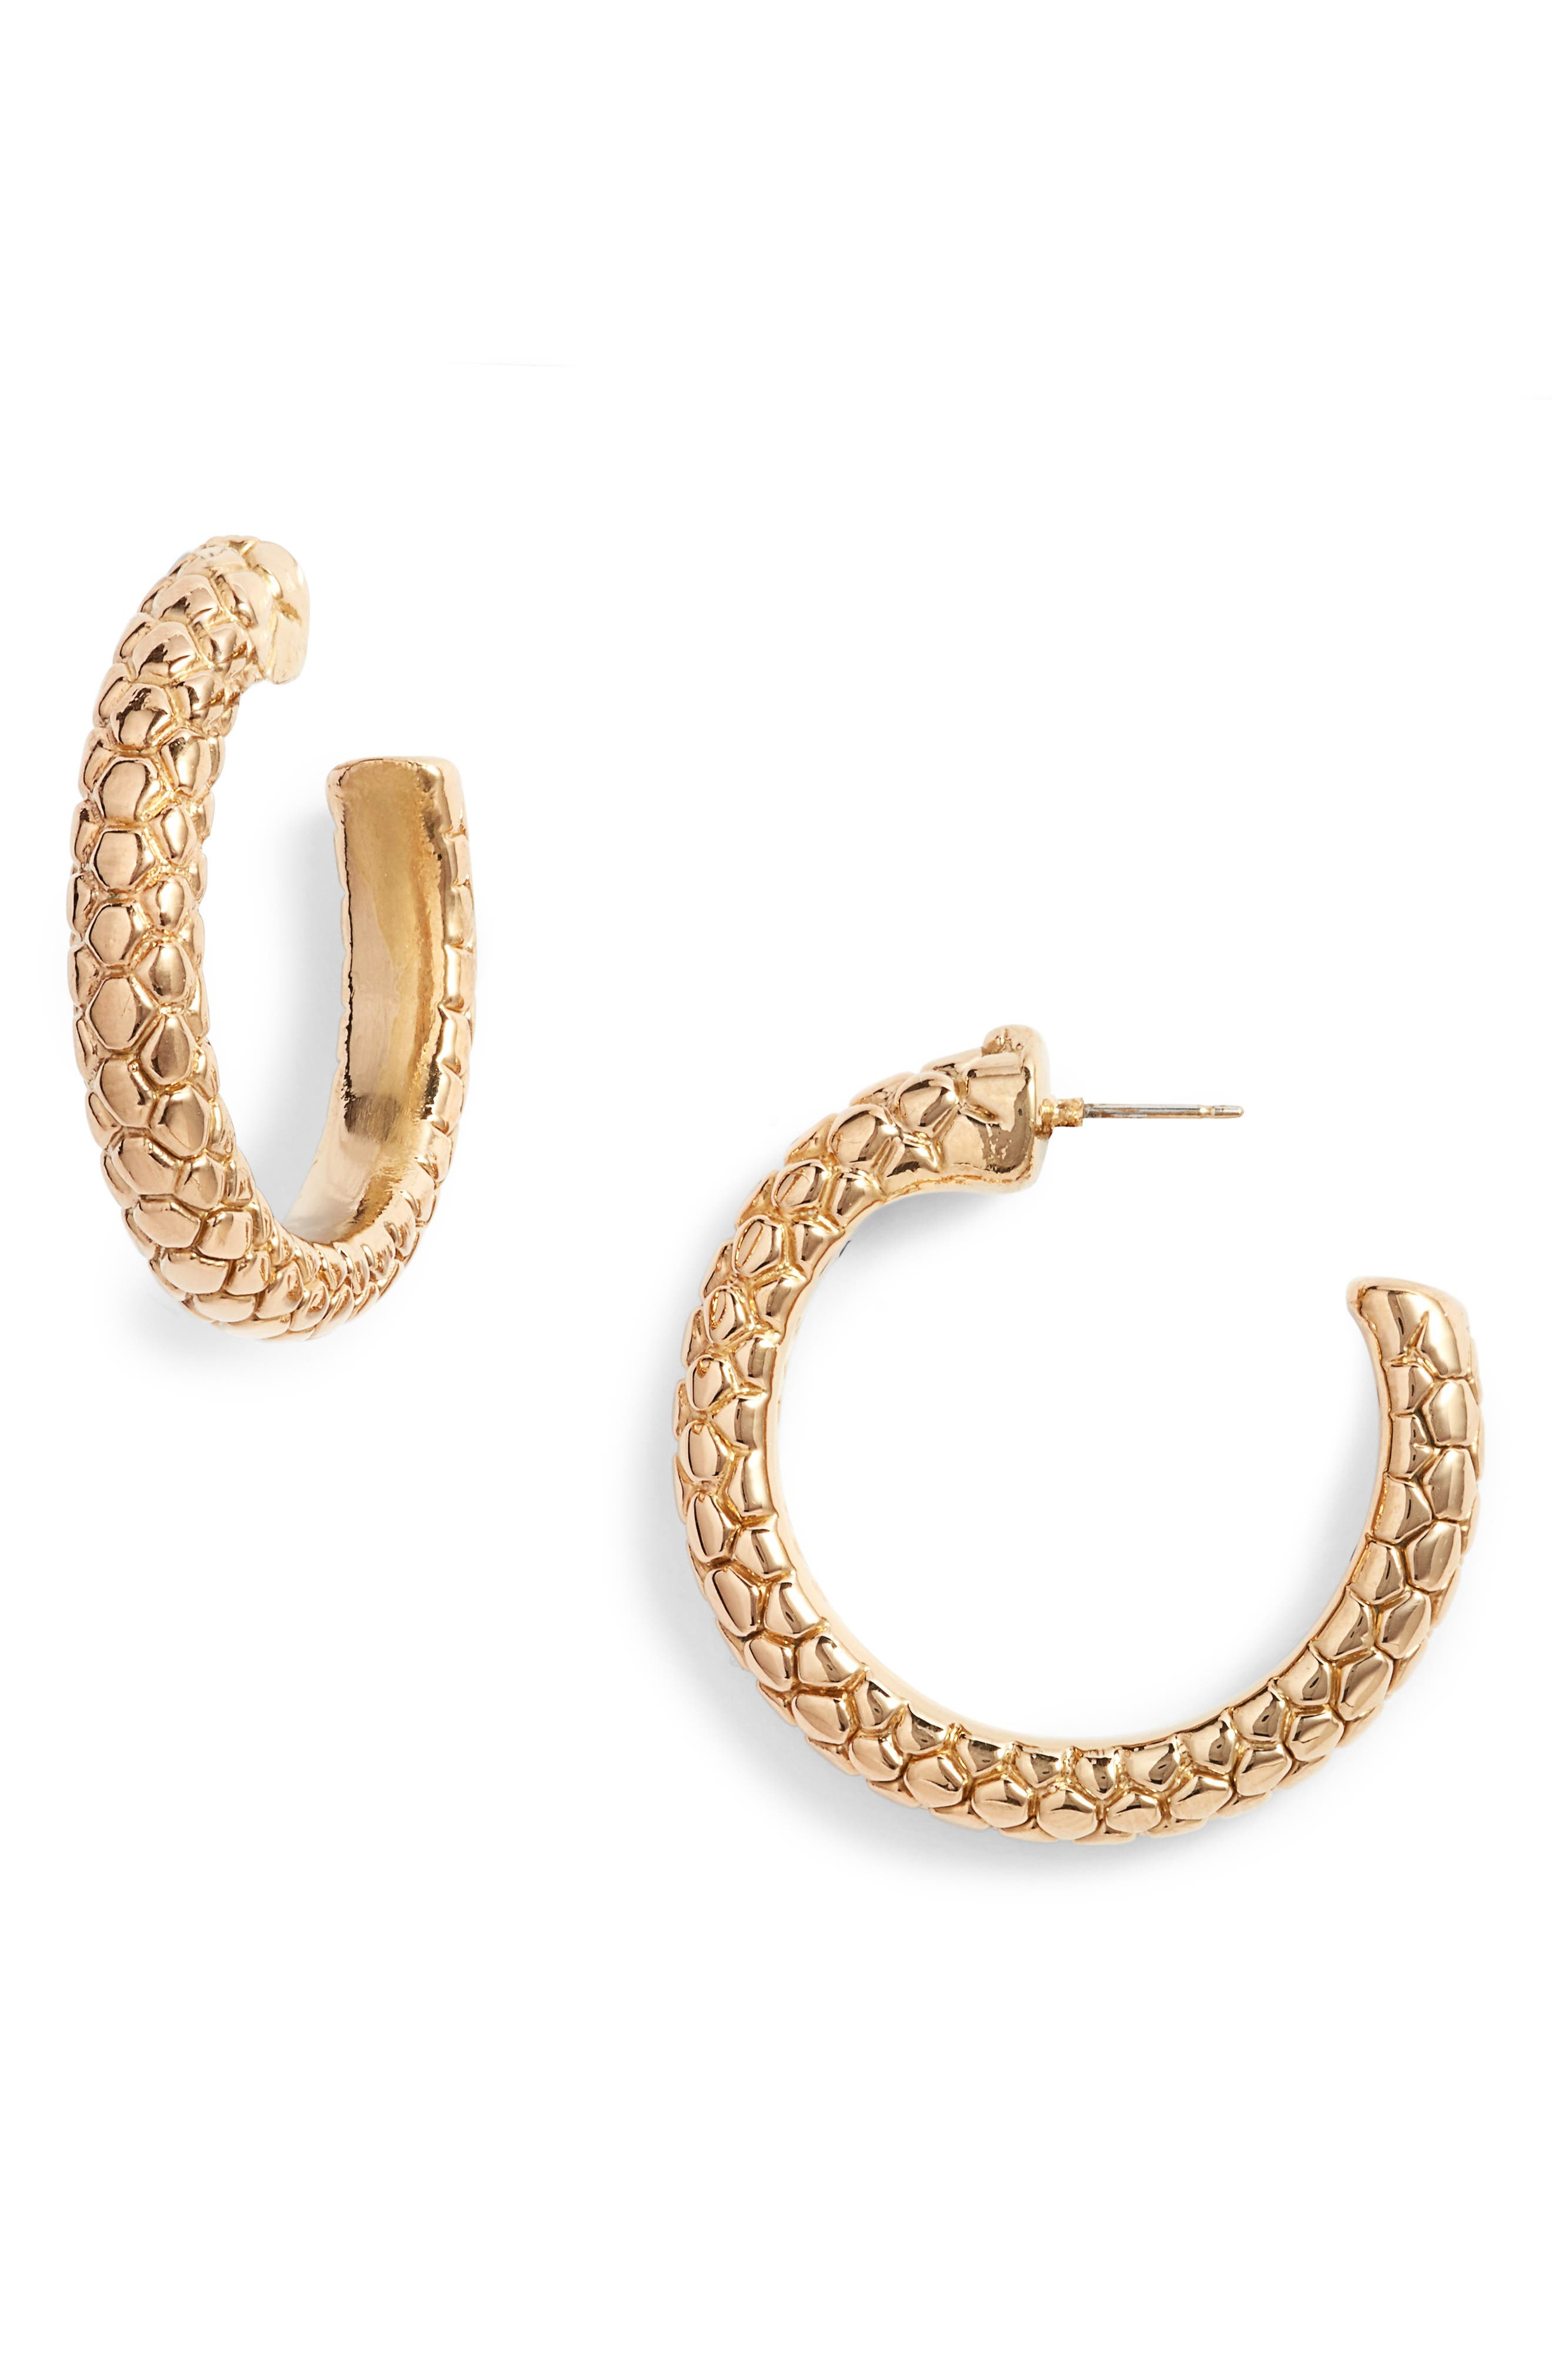 Simon Sebbag Pebble Texture Vermeil Hoop Earrings